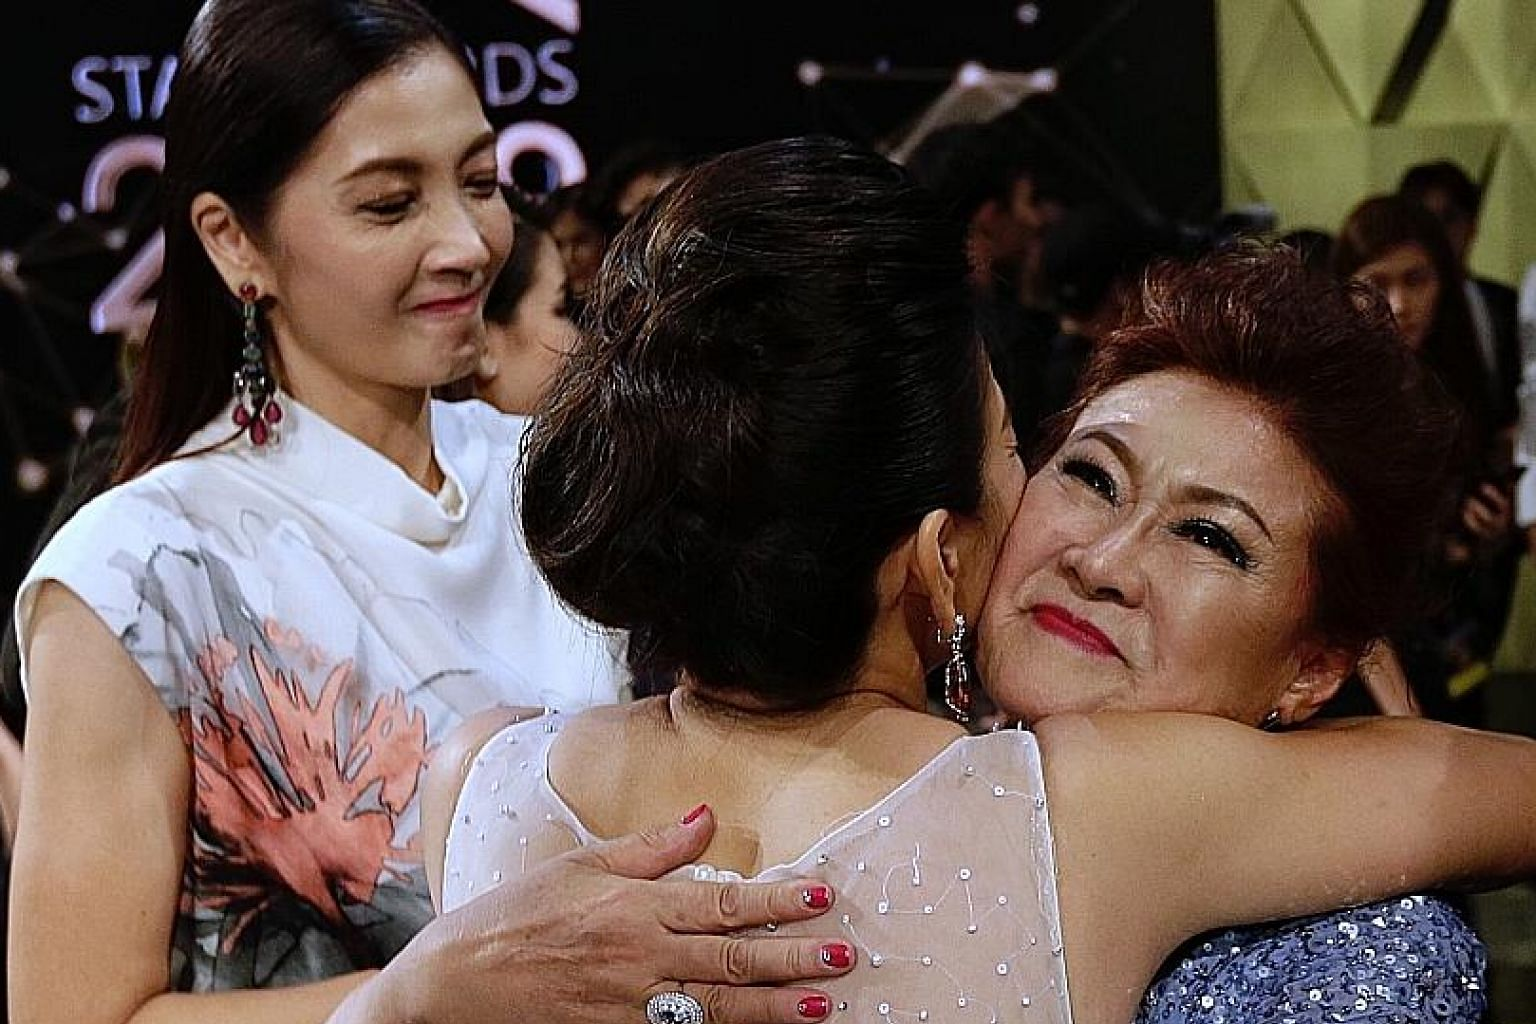 Veteran actress Jin Yinji receives a hug from radio deejay Wendy Zeng last night. She was named one of the Top 10 Most Popular Female Artists for the first time. With them is actress Huang Biren.